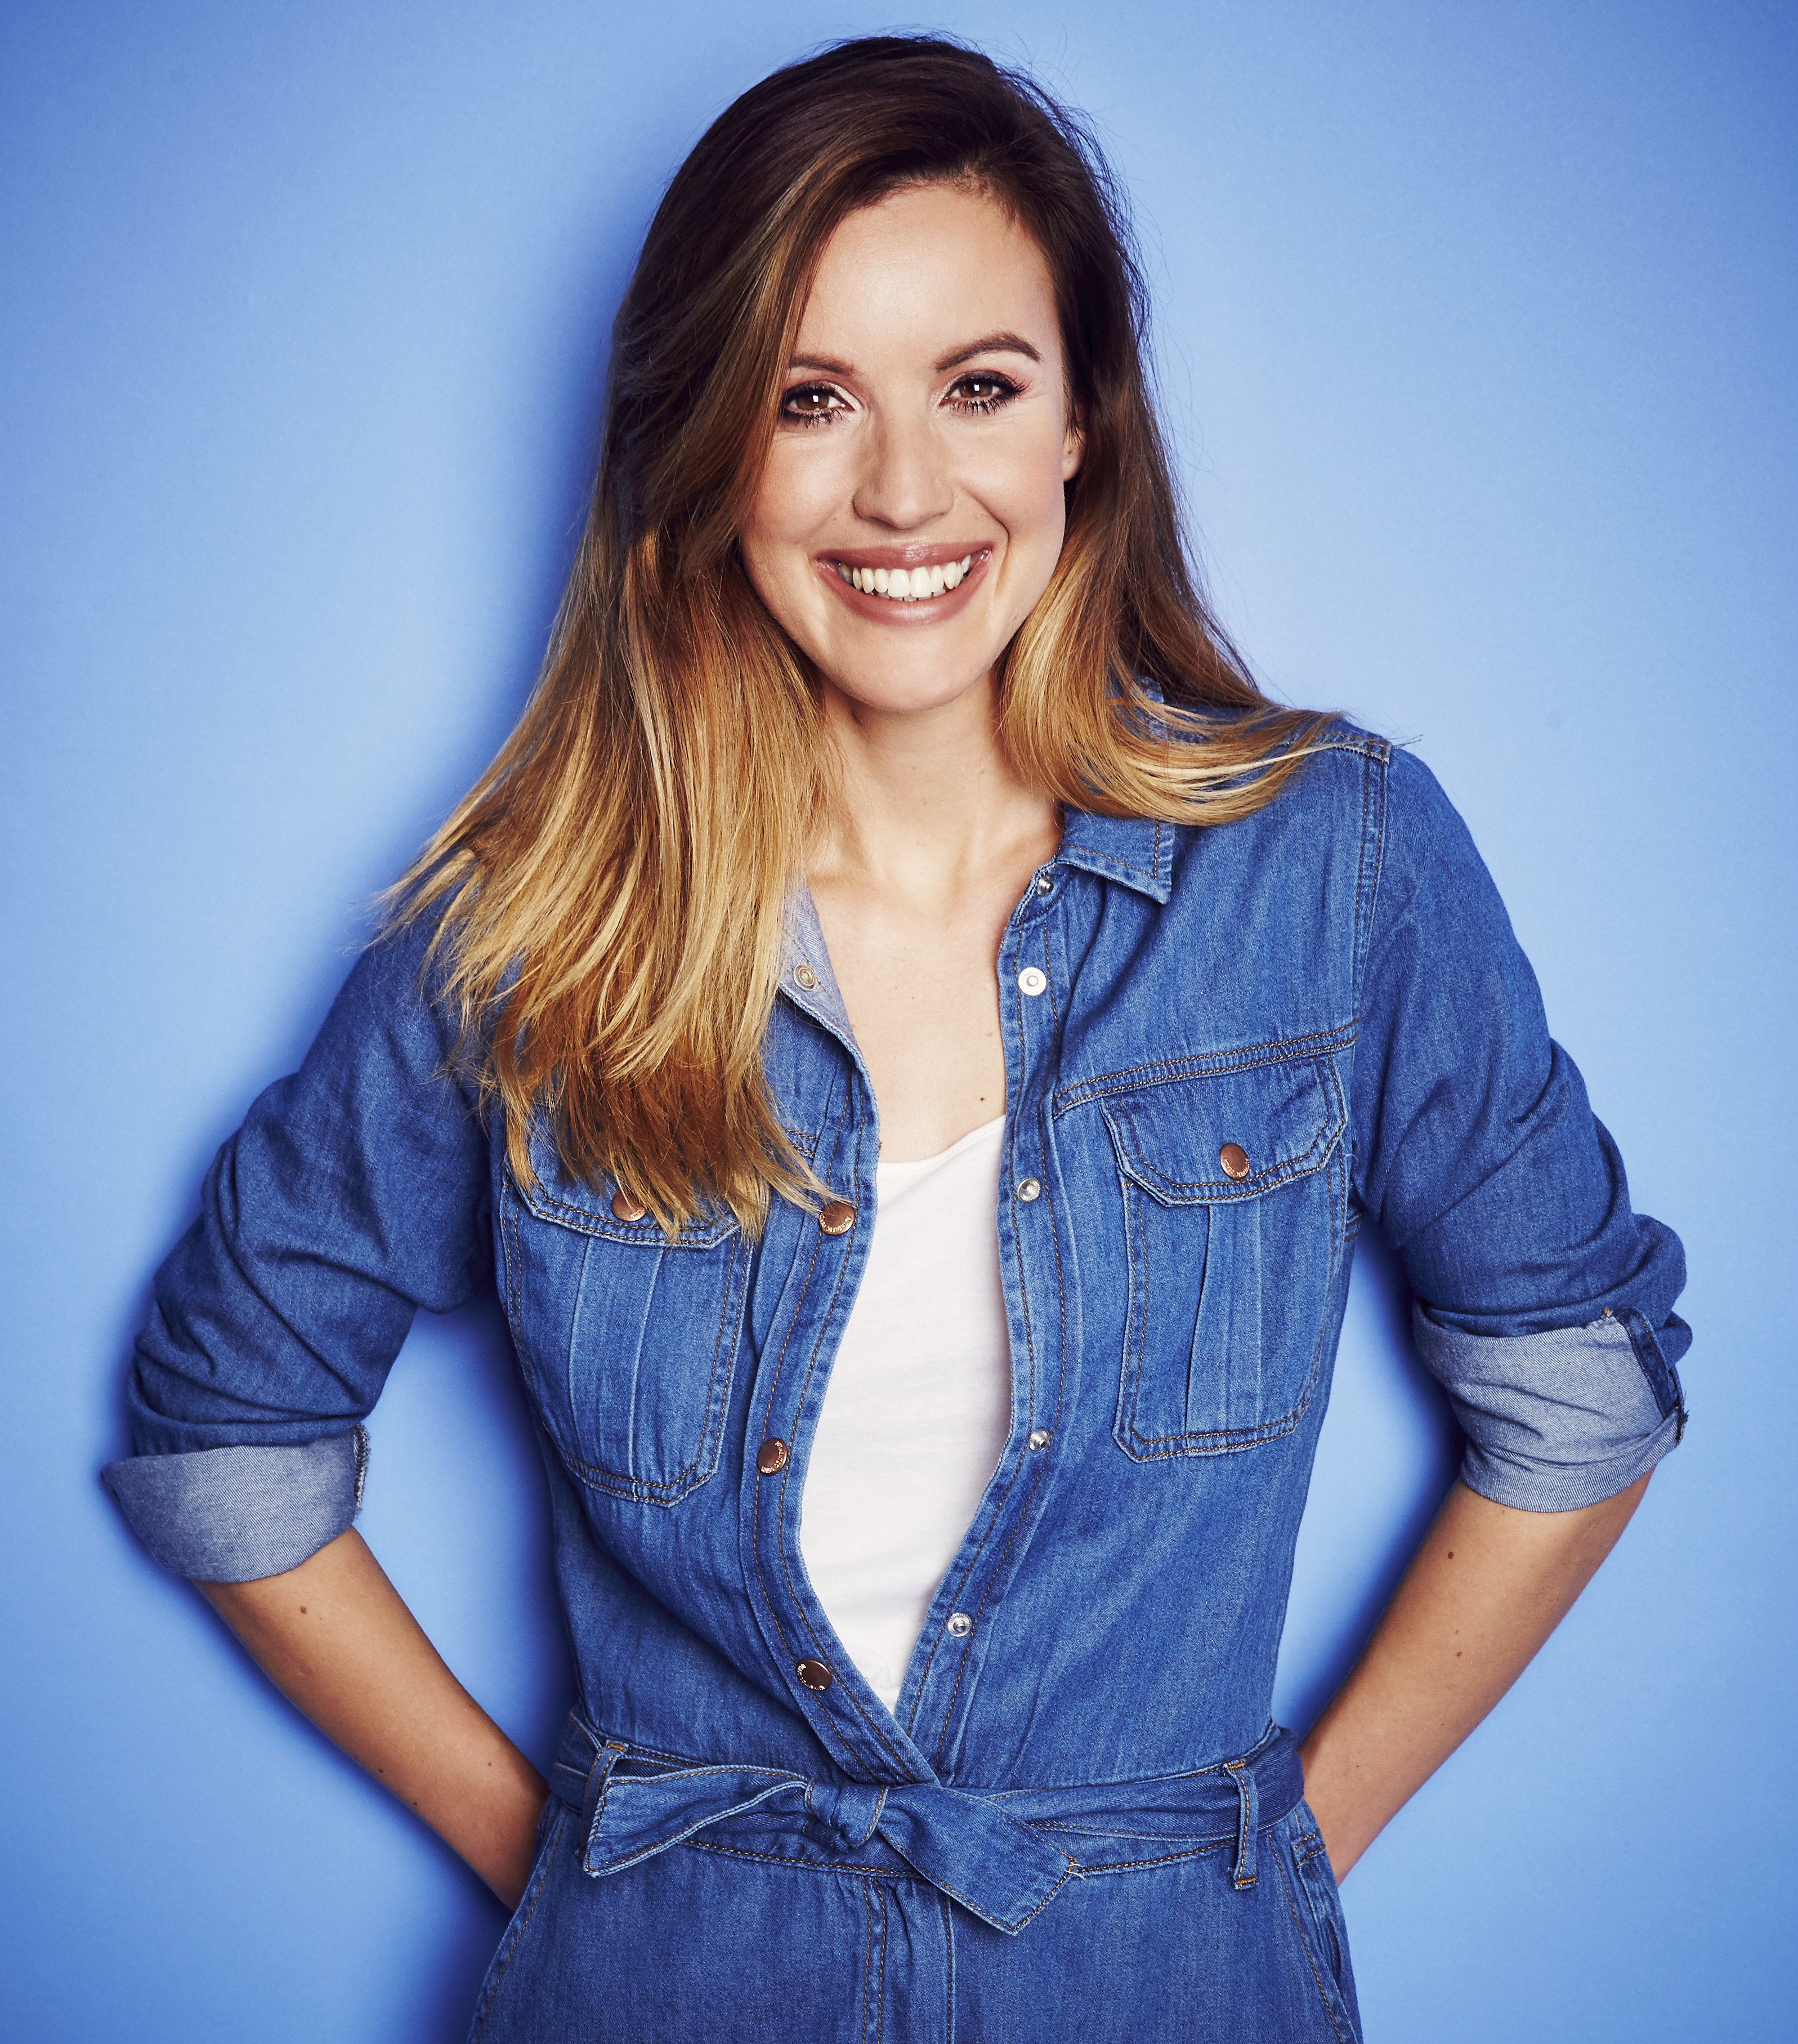 'I'm Determined To Cycle Again': Charlie Webster On Coping With PTSD After Near-Death Malaria Experience